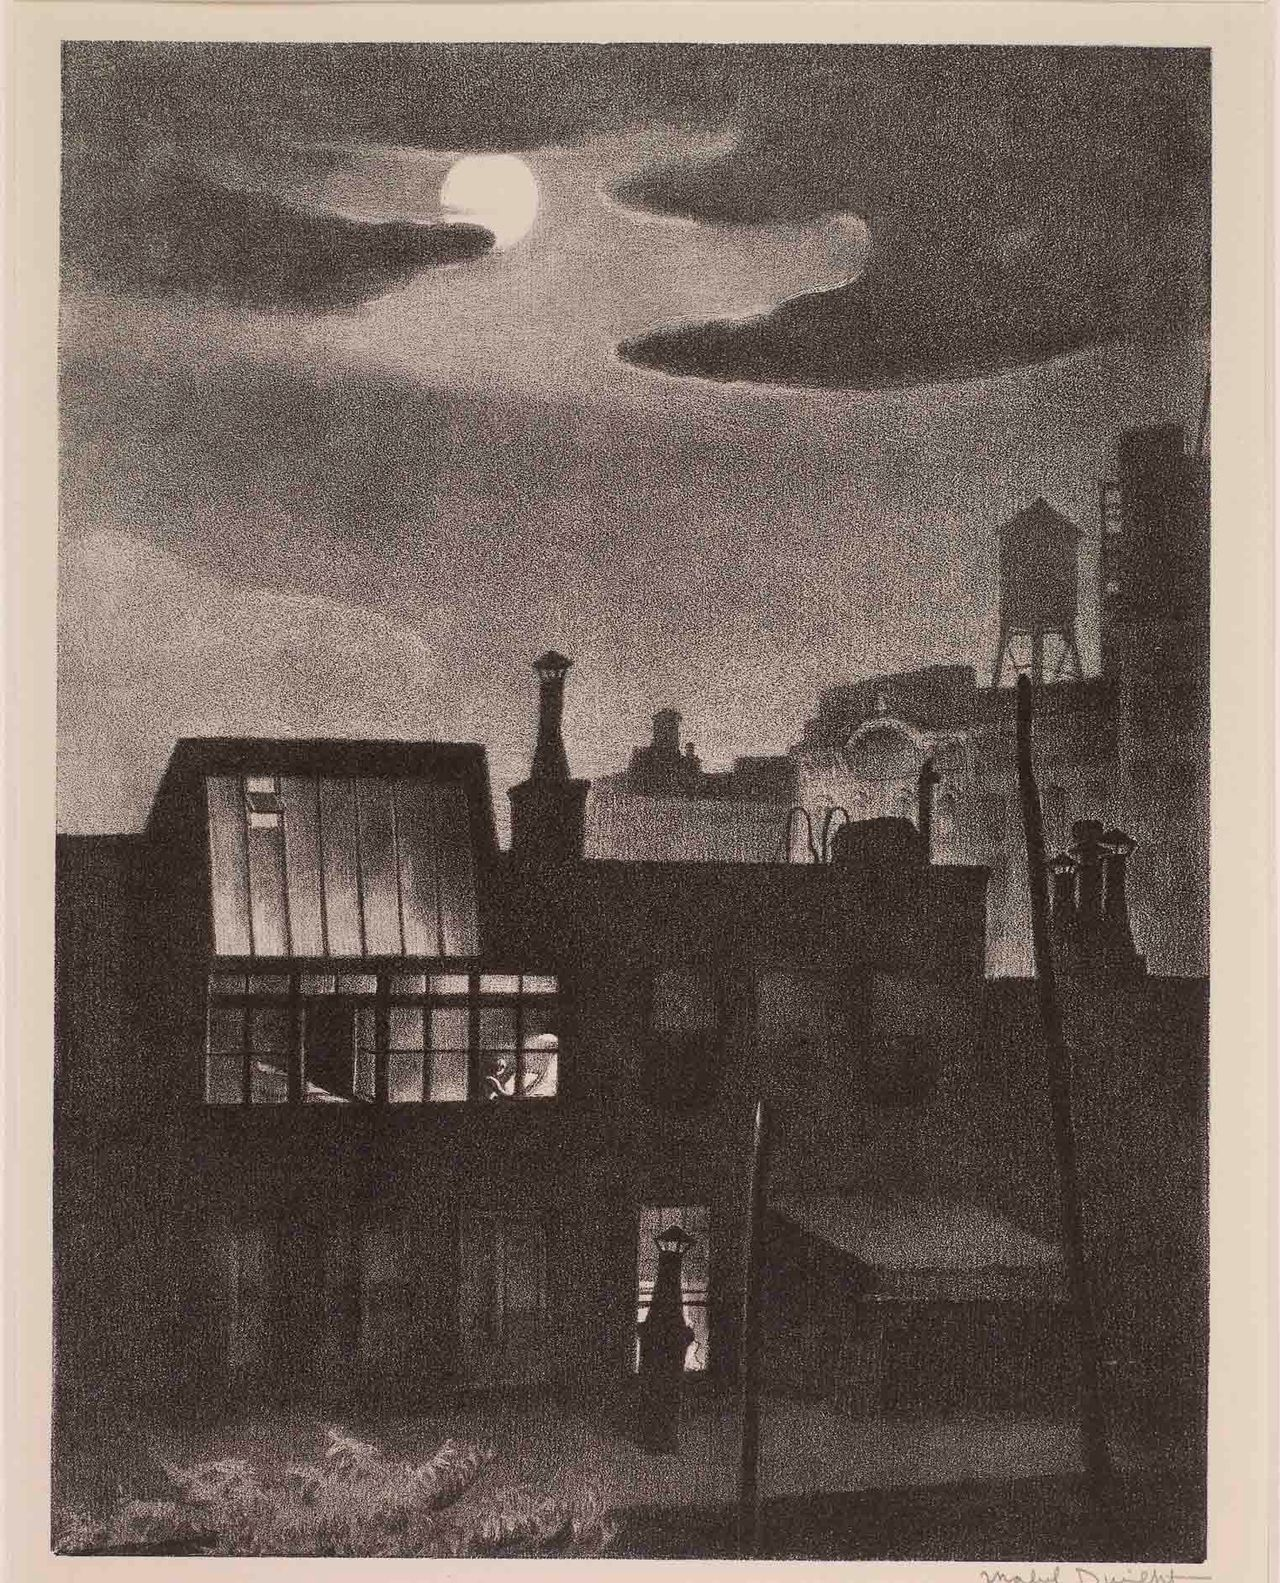 Mabel Dwight, Night Work (1931) Courtesy of the Huntington Library, Art Collections and Botanical Gardens